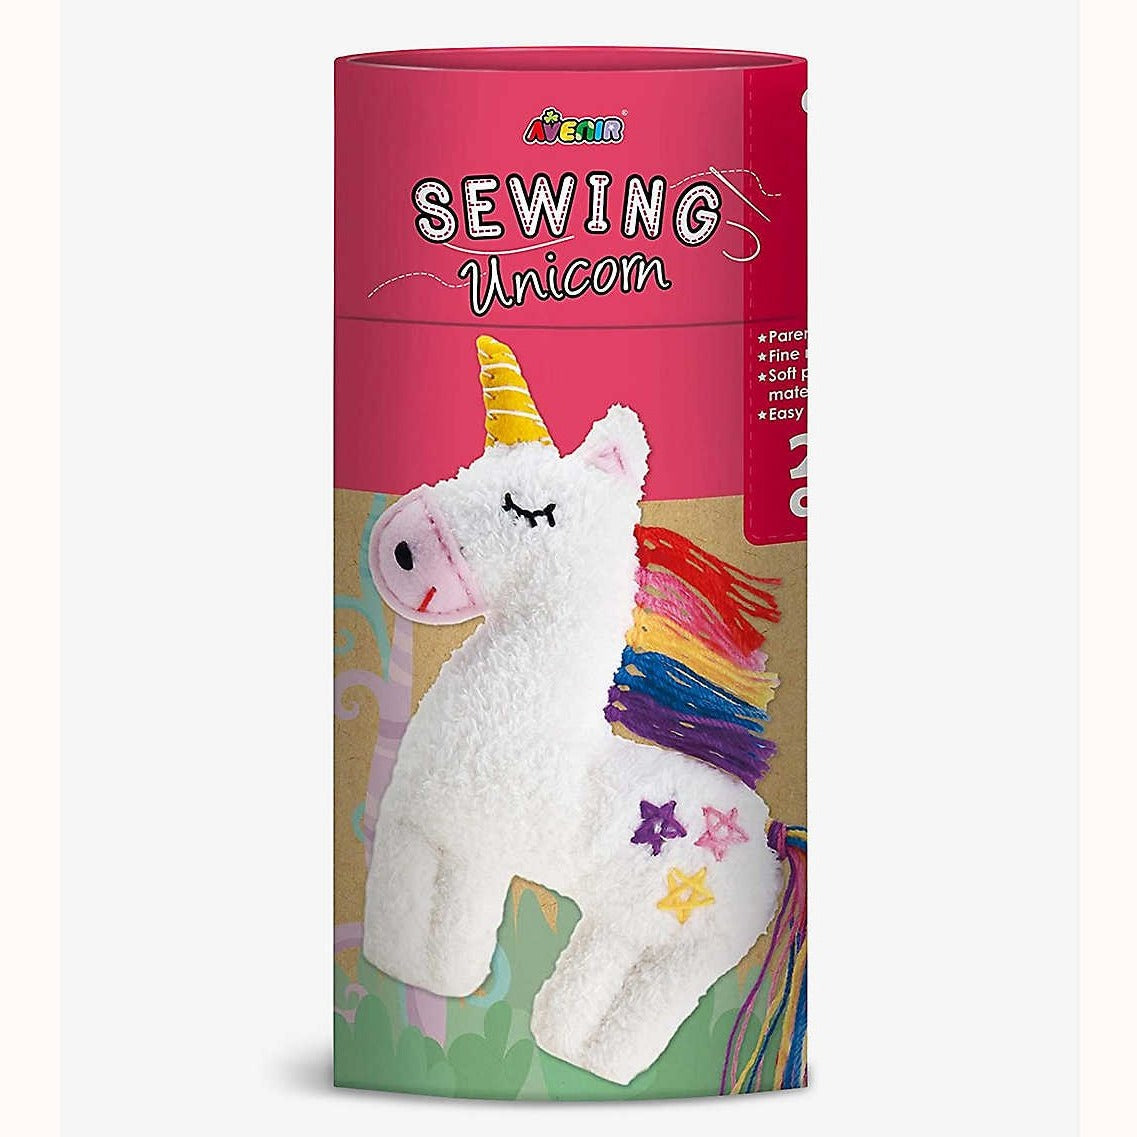 DIY Sewing Unicorn, packaged